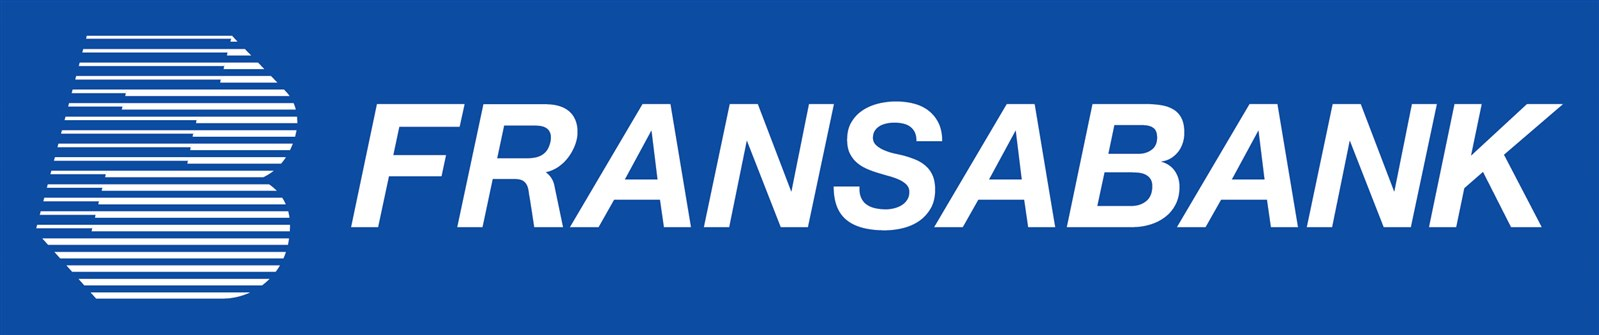 Fransabank